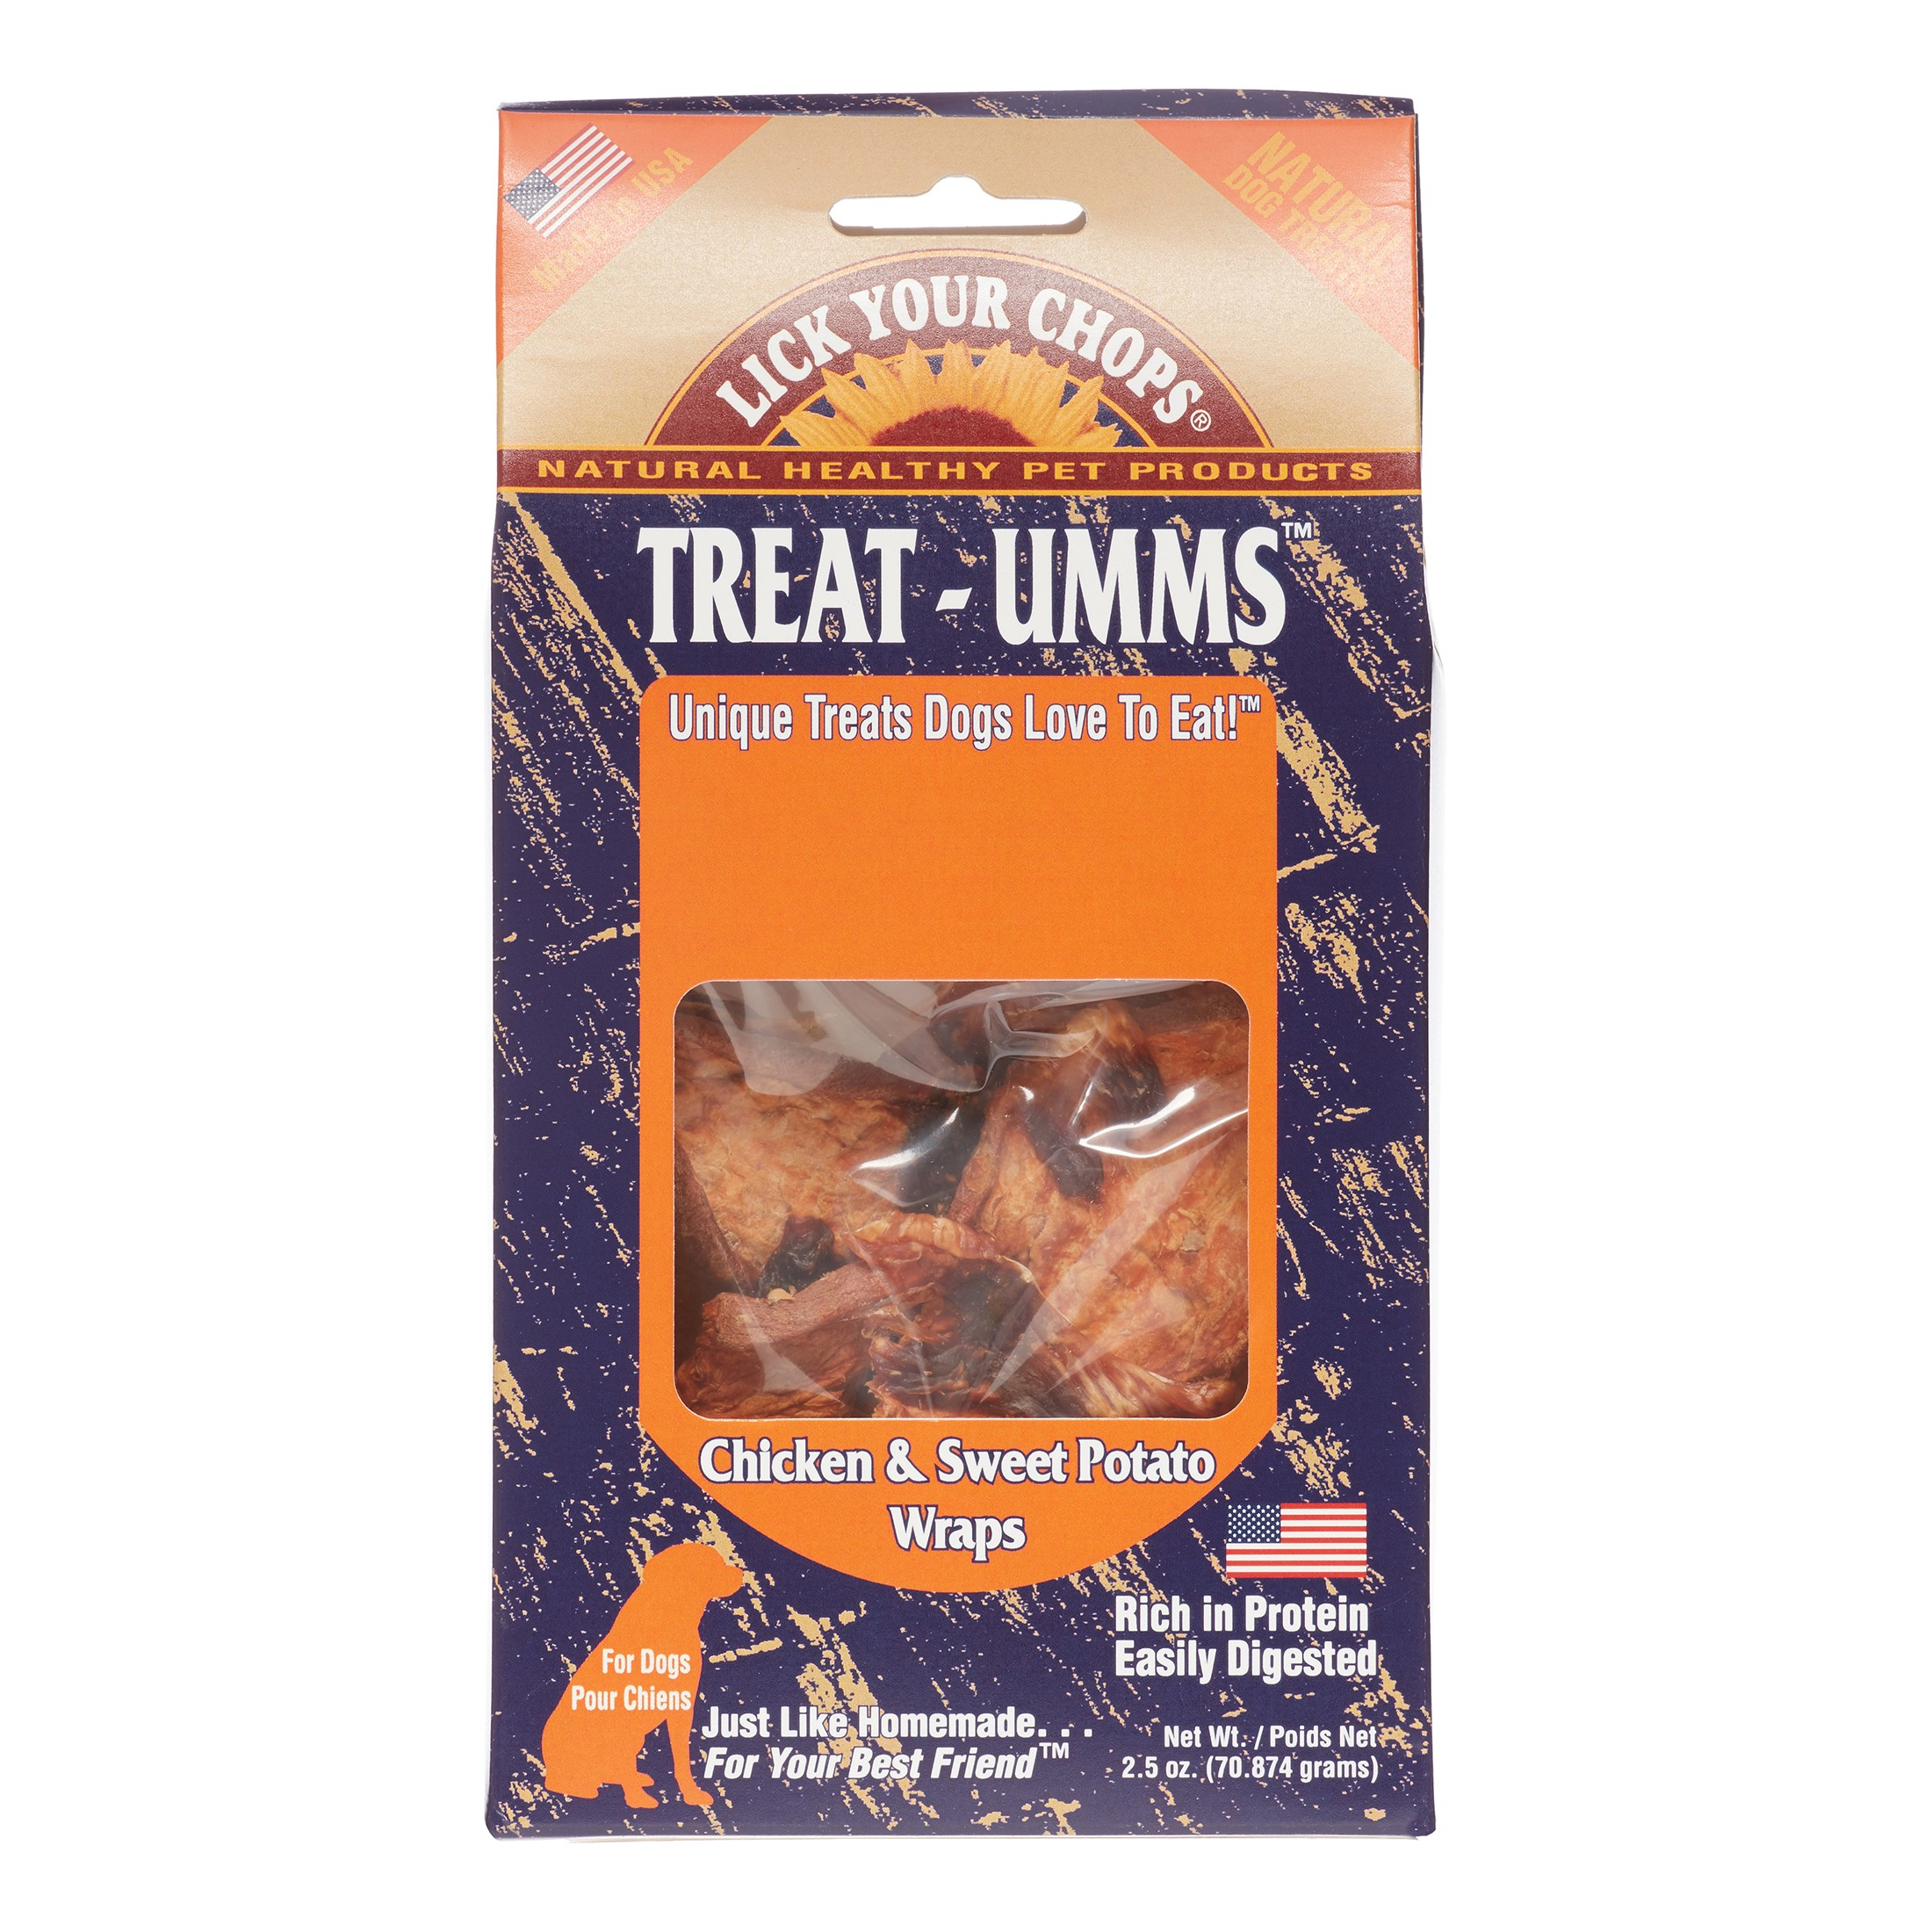 Lick Your Chops Treat-Umms Chicken & Sweet Potato Wraps All Stages Dry Dog Treats, 2.5 Oz